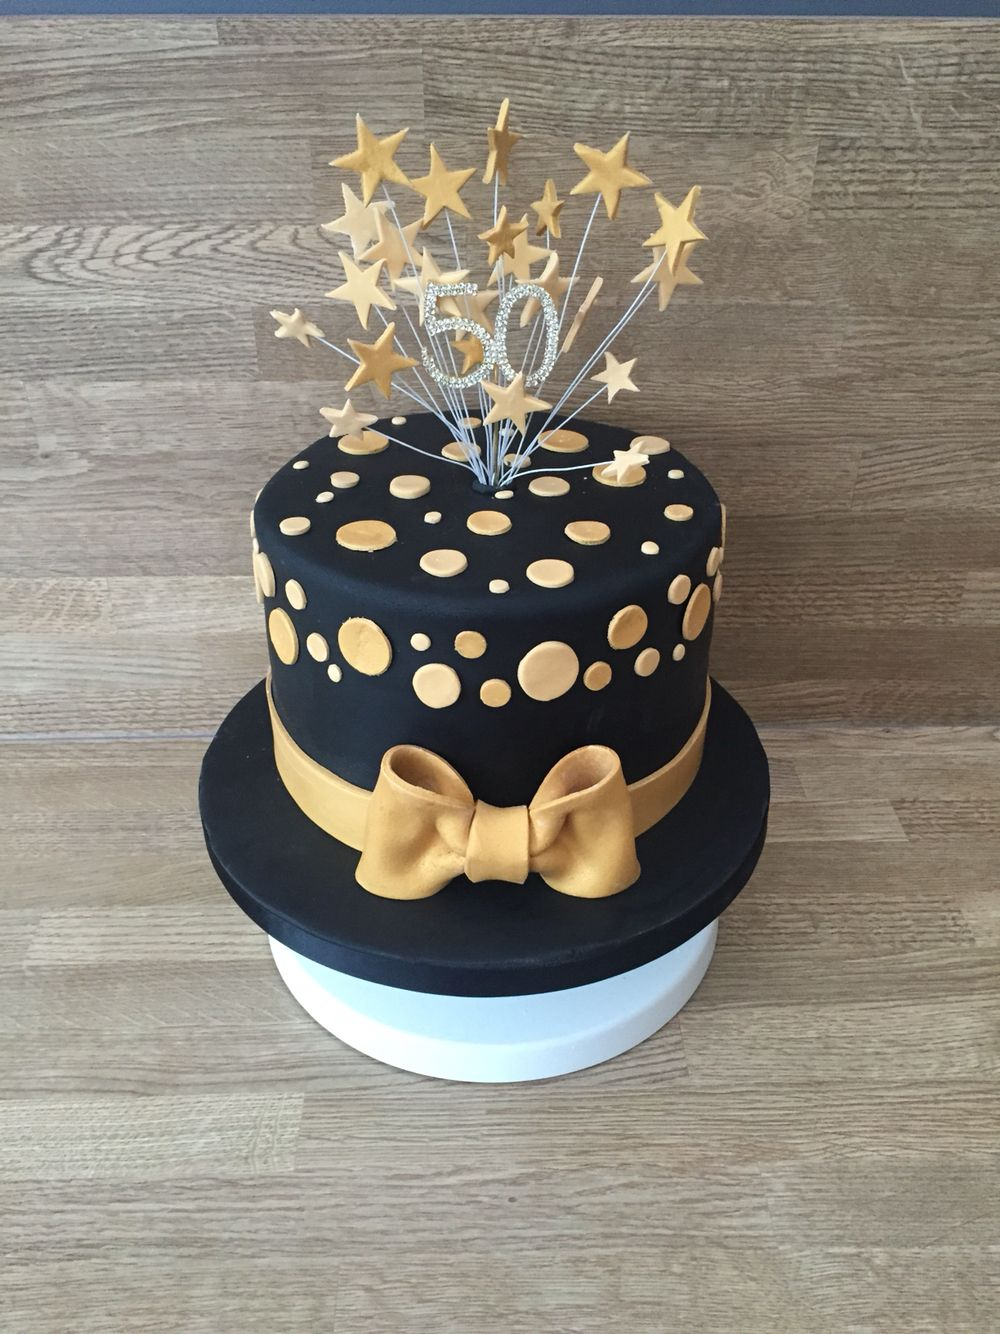 Black And Gold Cake Black And Gold Birthday Cake Golden